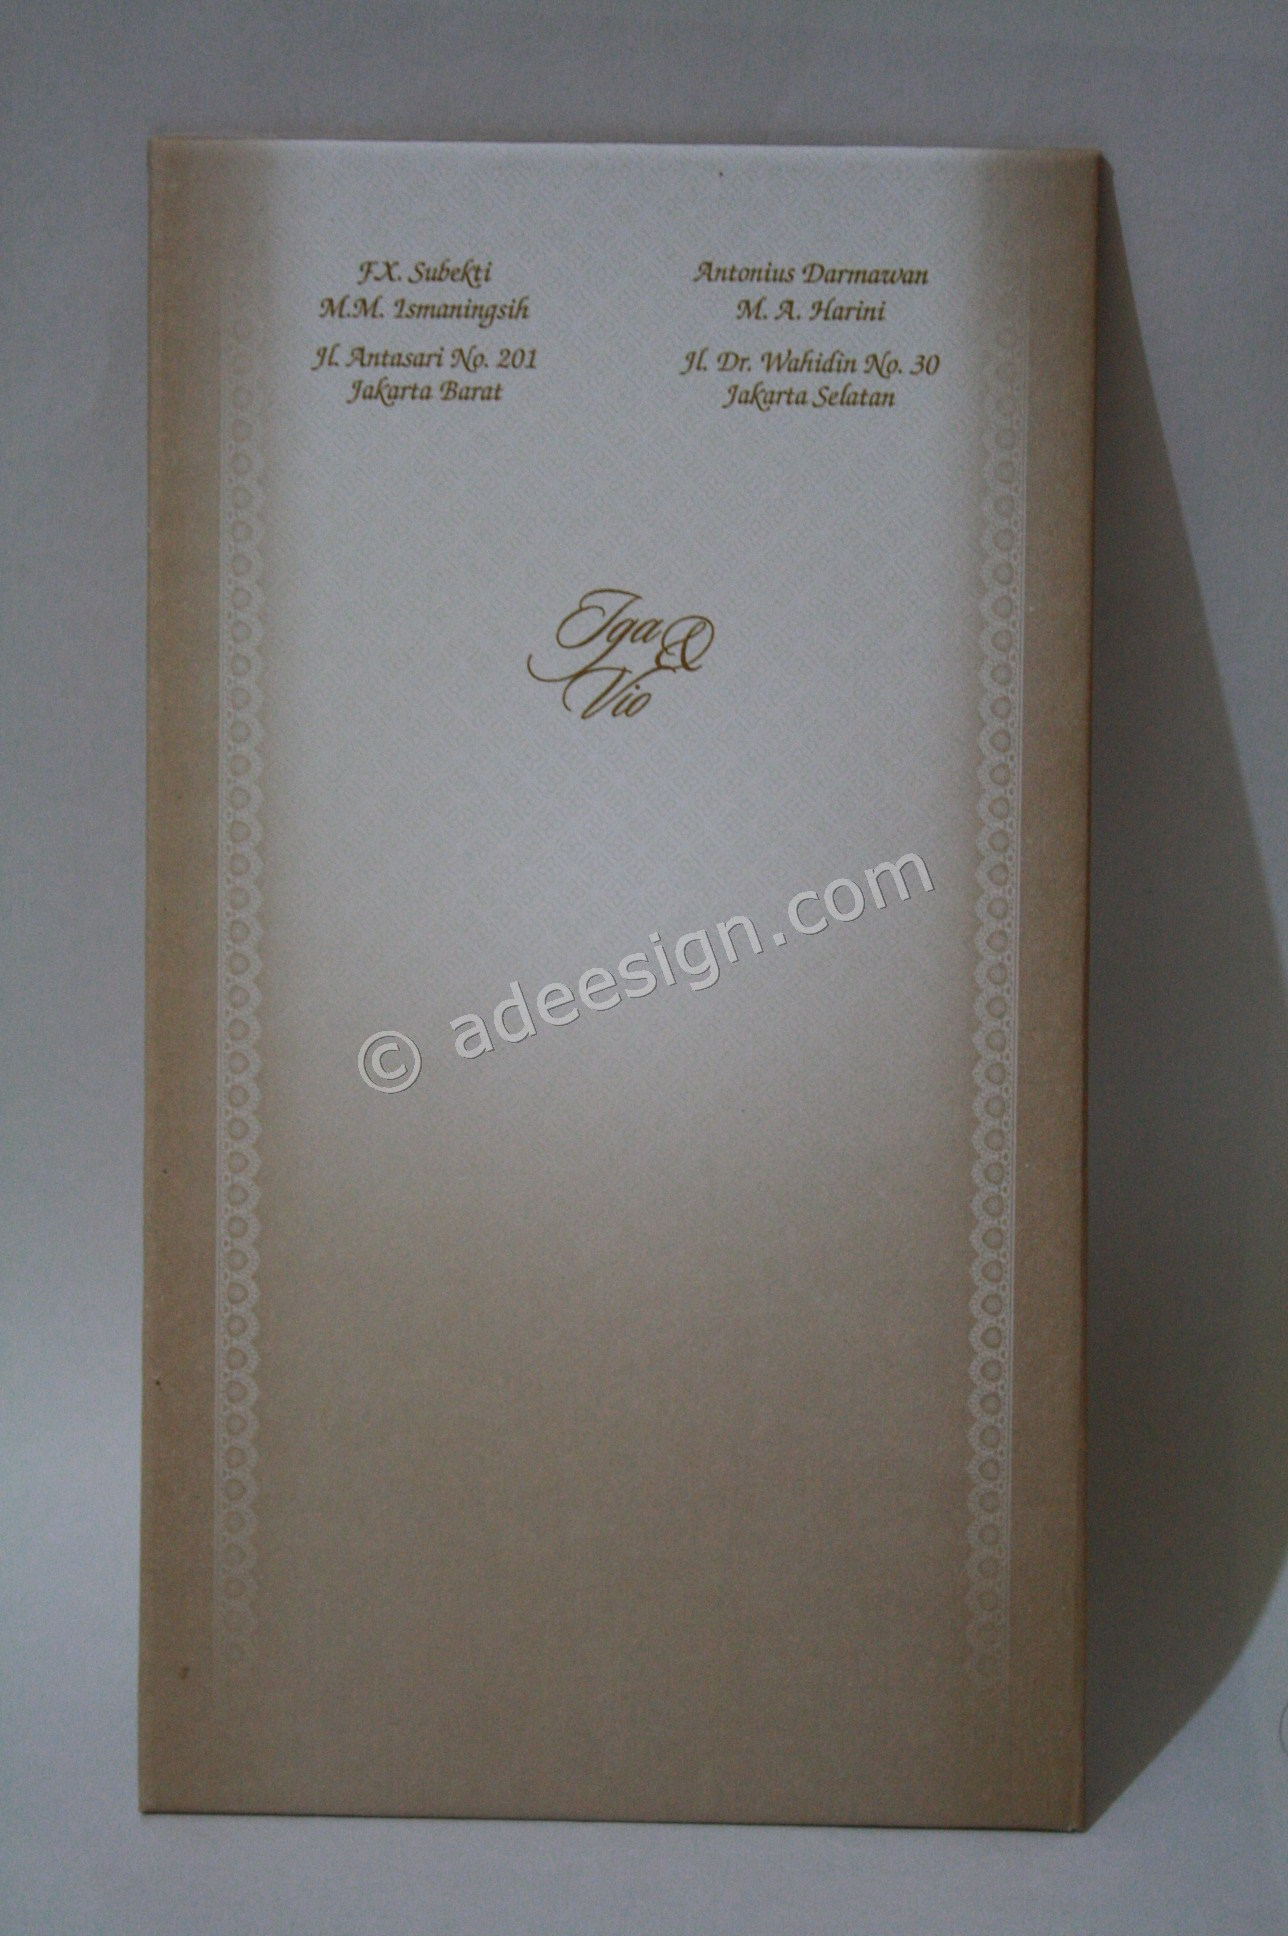 Kartu Undangan Pernikahan Semi Hard Cover Iga dan Vio 2 - Percetakan Wedding Invitations Elegan di Pakal